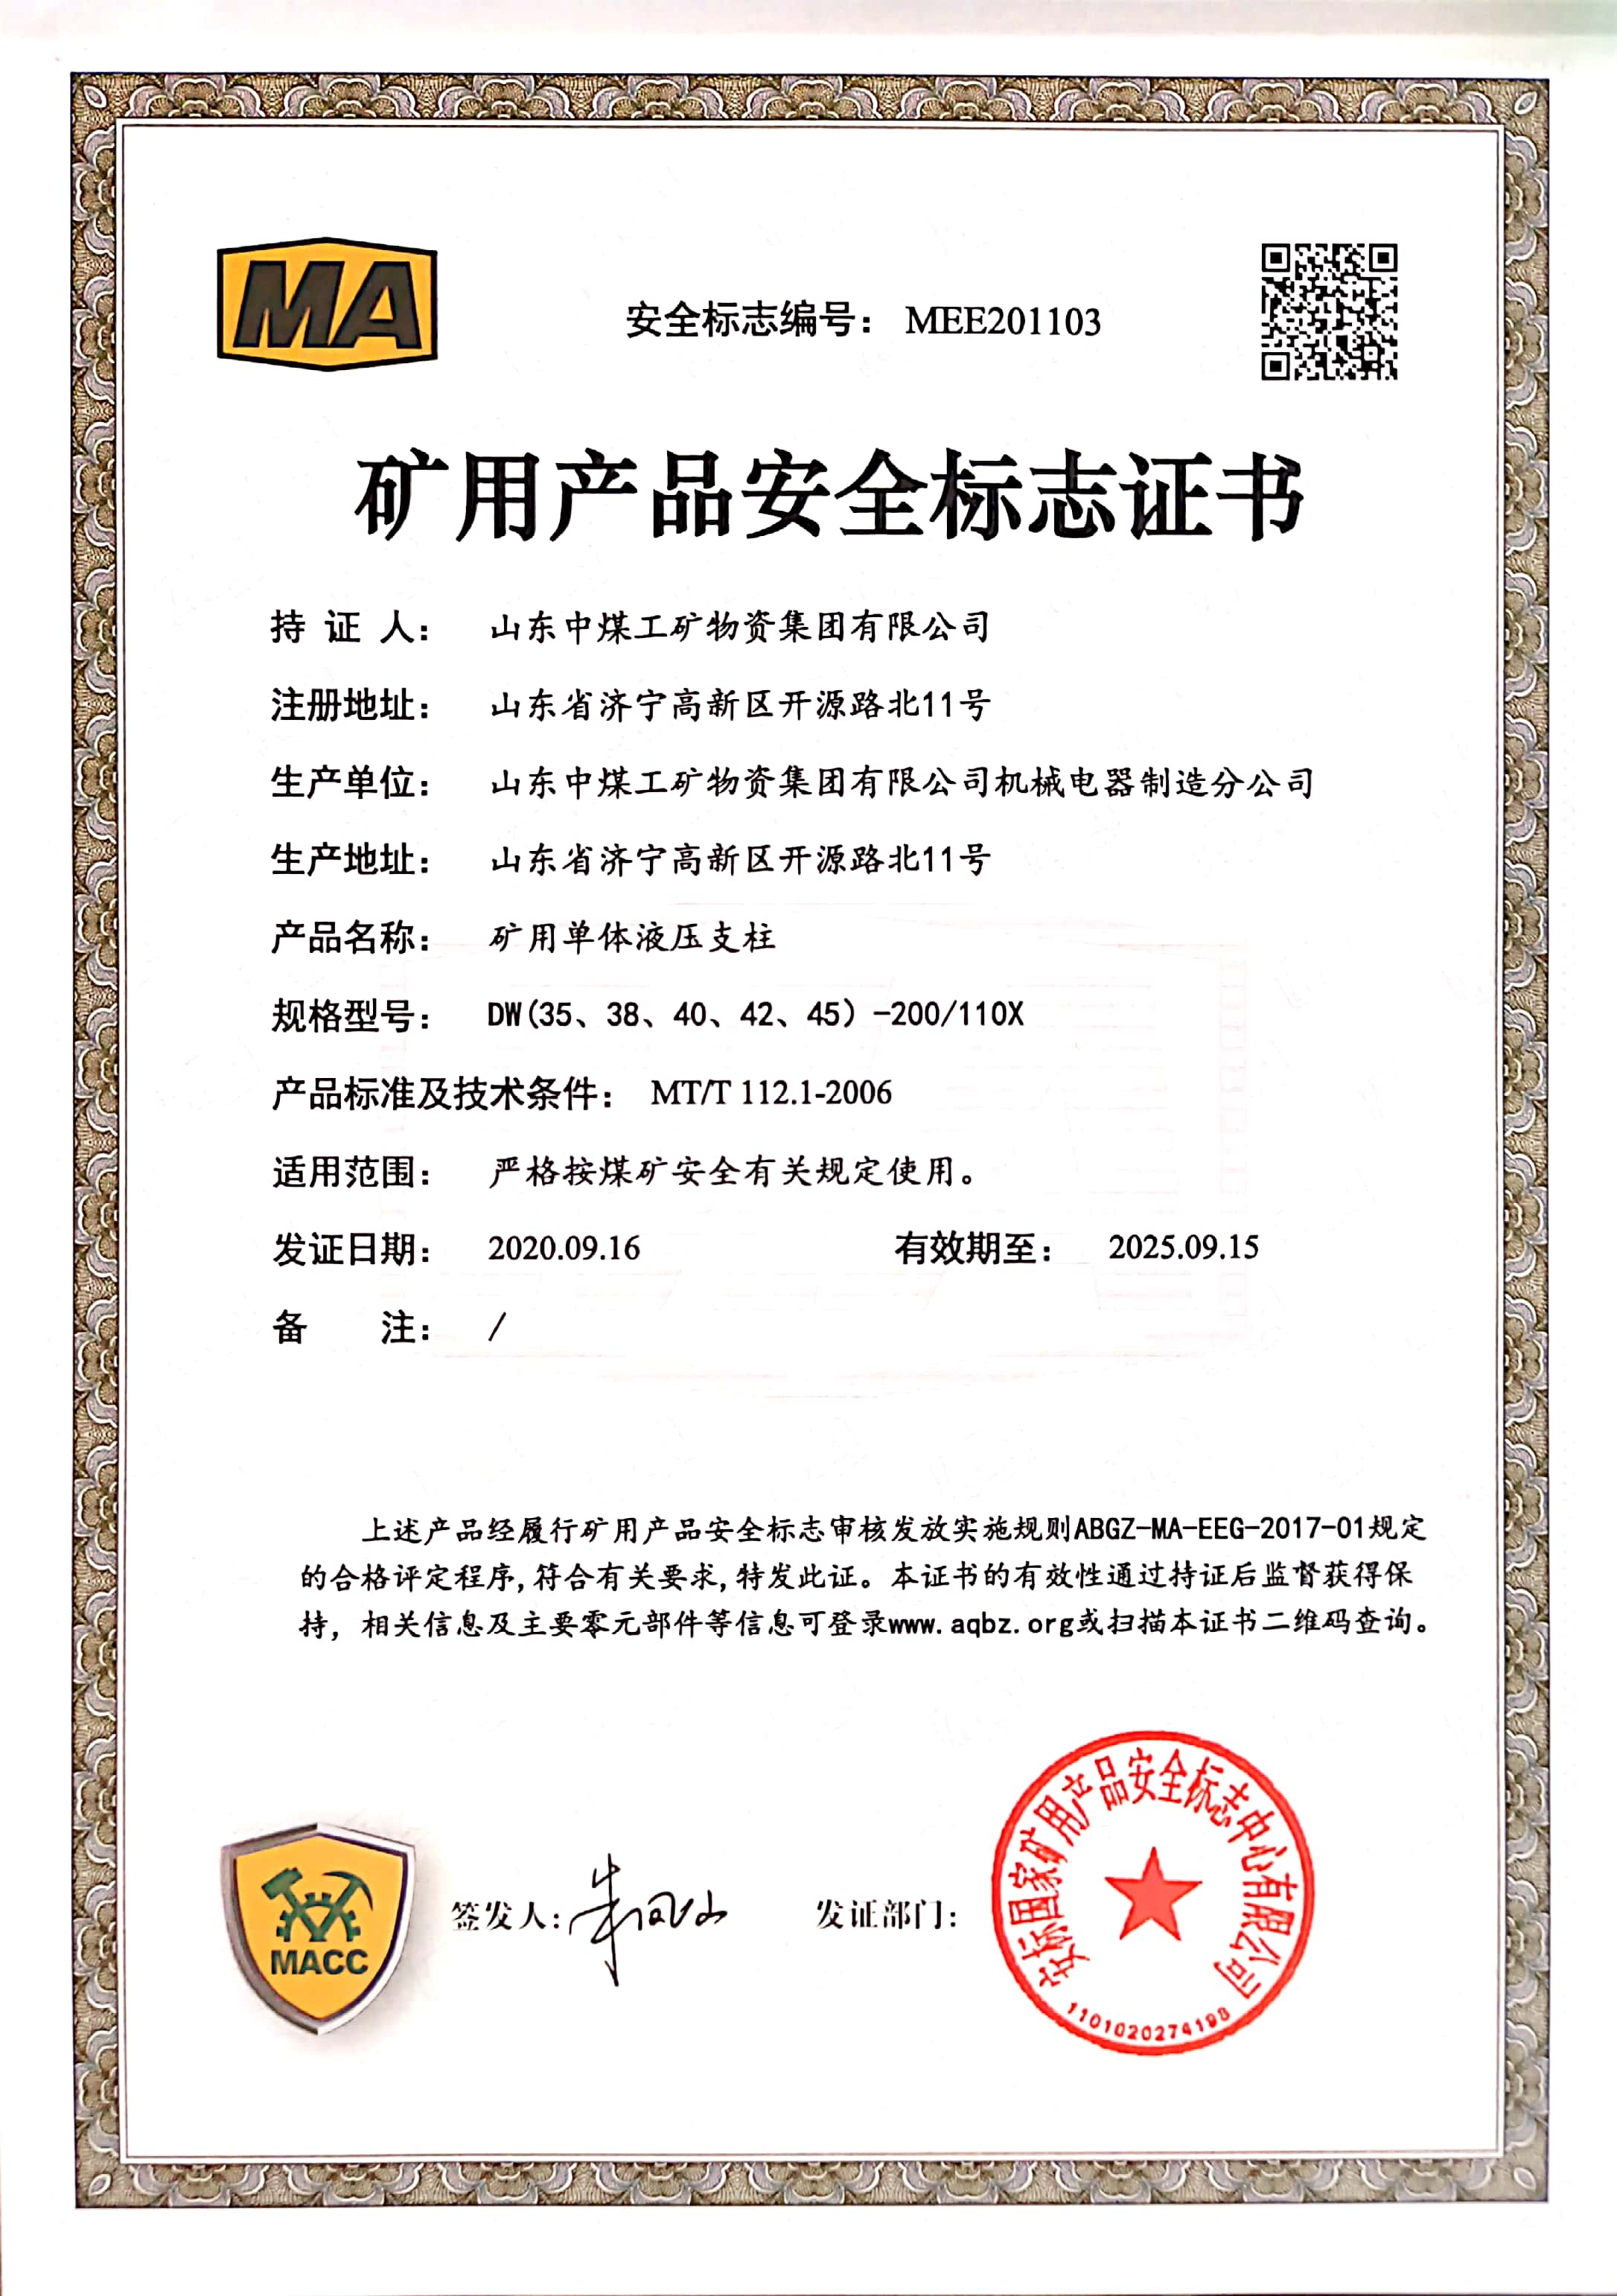 Group'S Mining Single Hydraulic Prop Products Adding 5 National Mining Product Safety Mark Certification